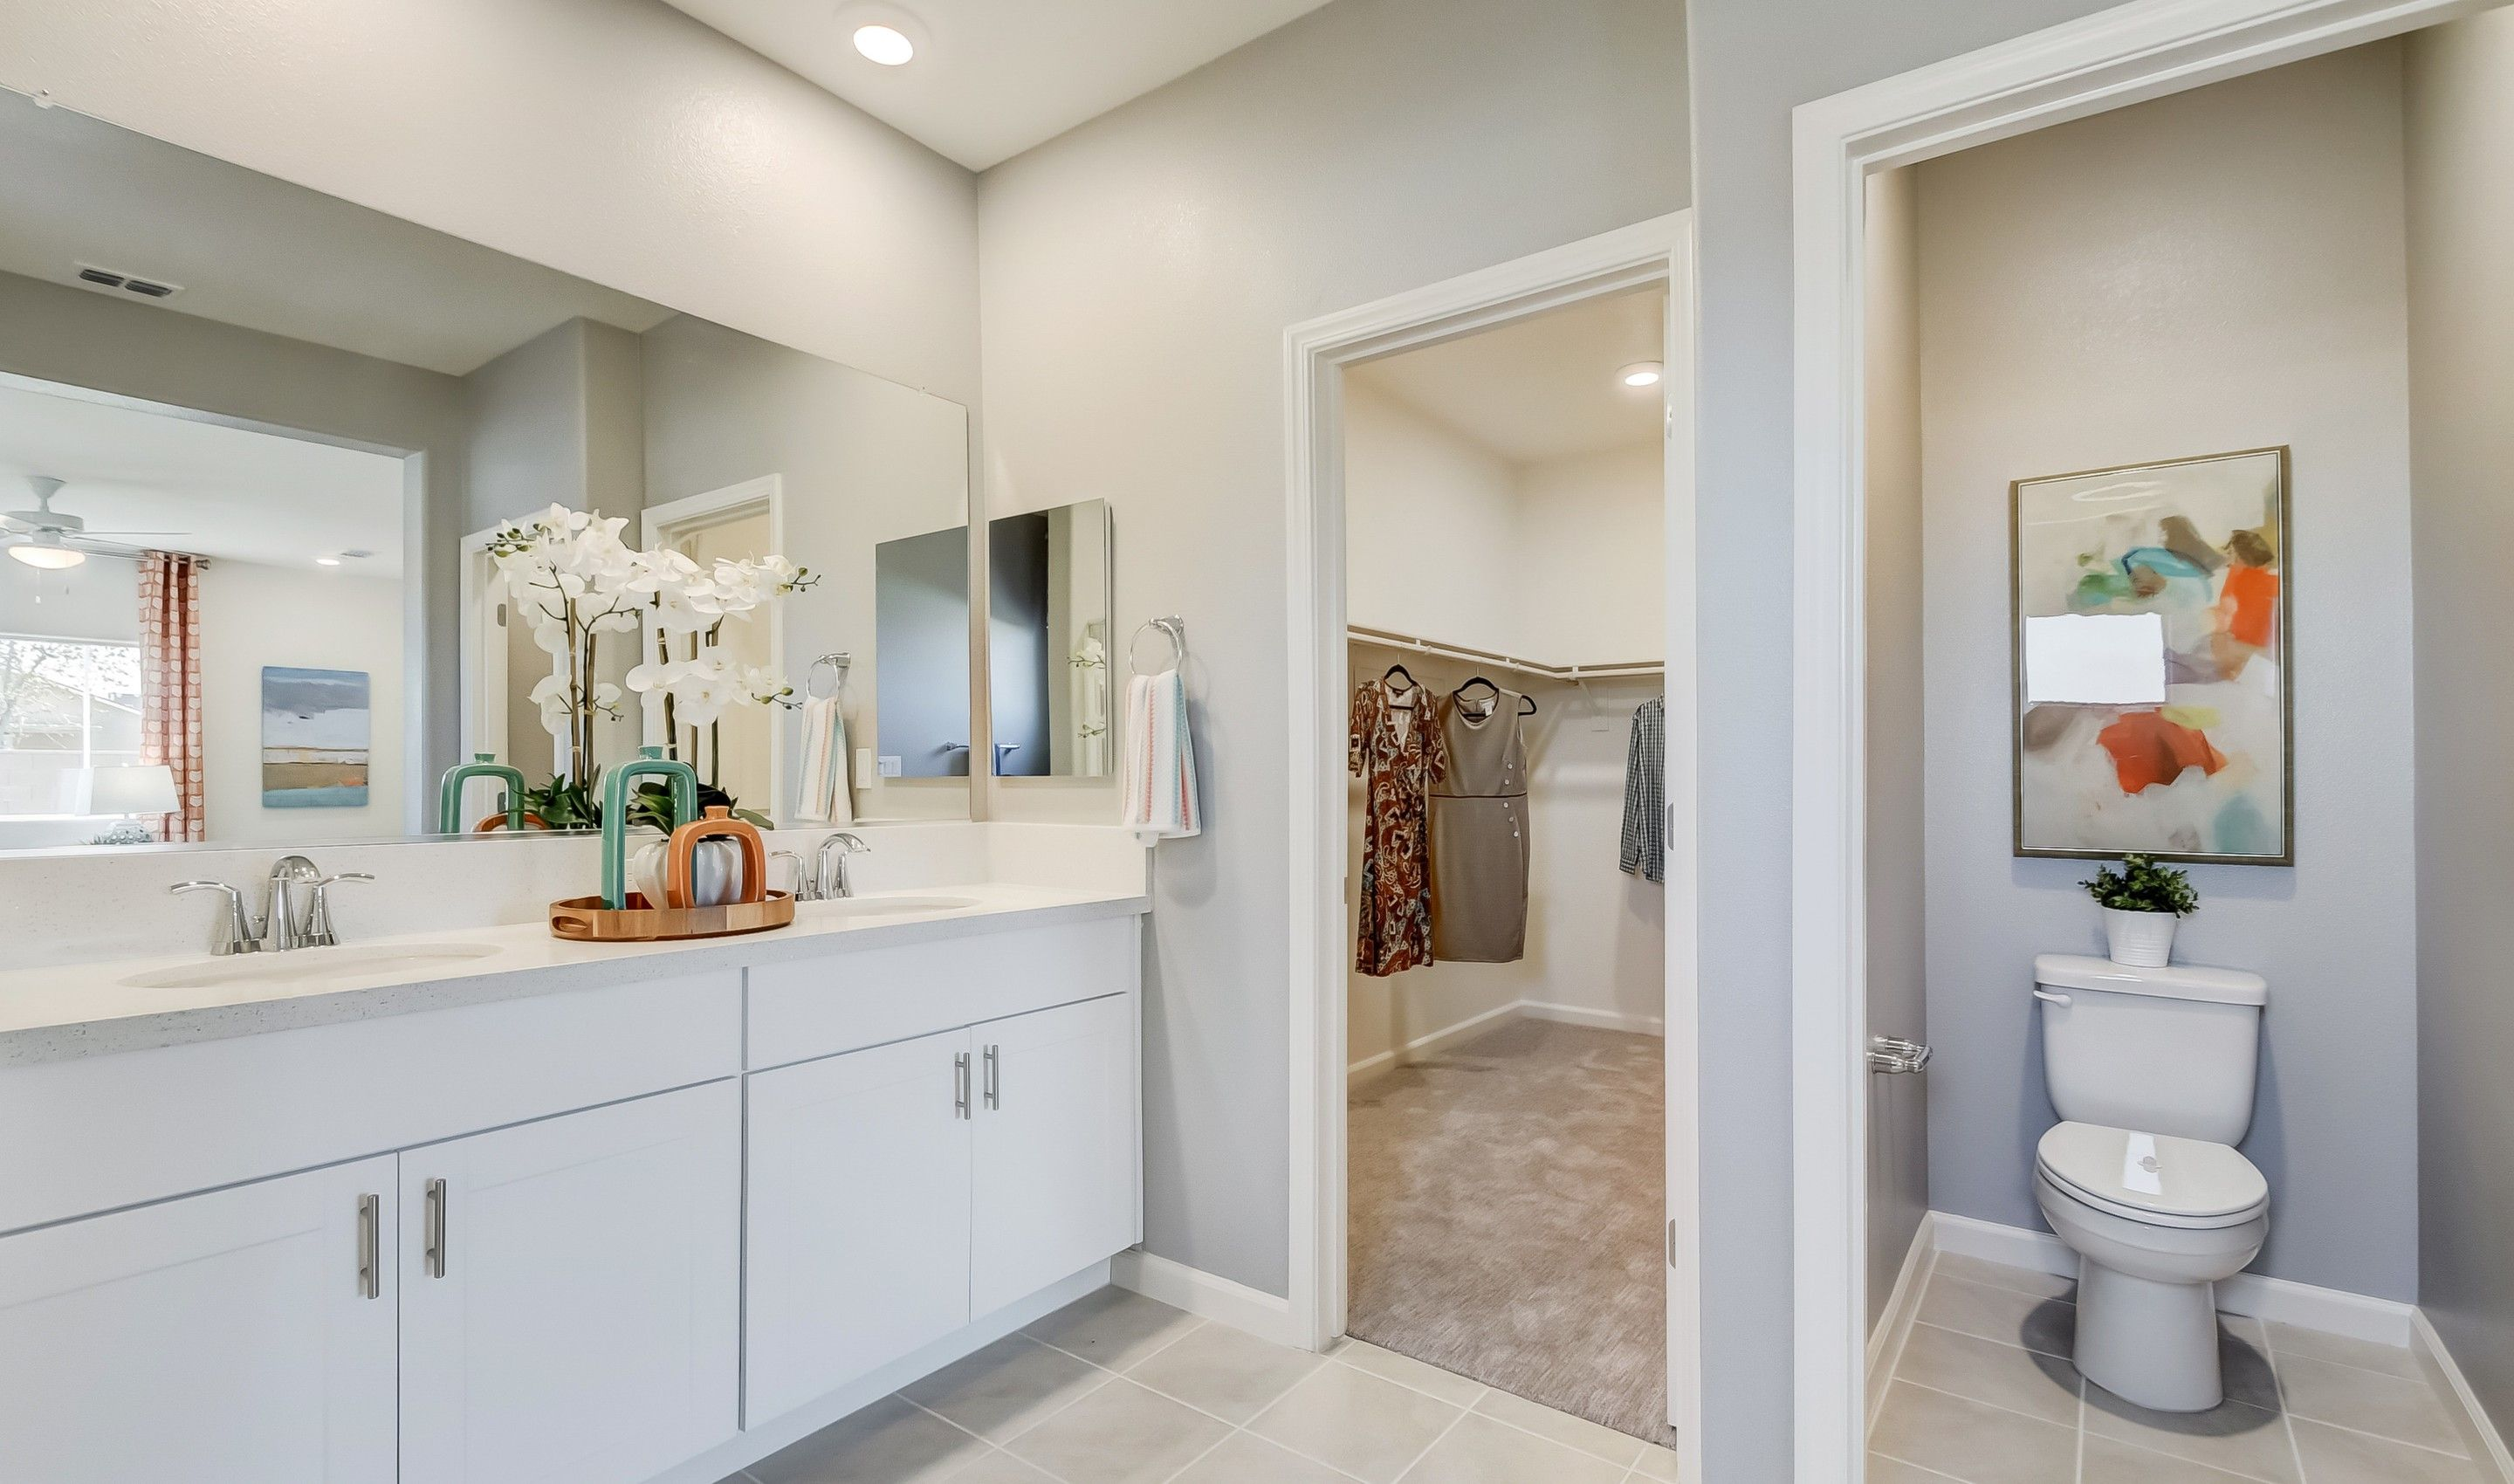 Bathroom featured in the Slate By K. Hovnanian® Homes in Fresno, CA